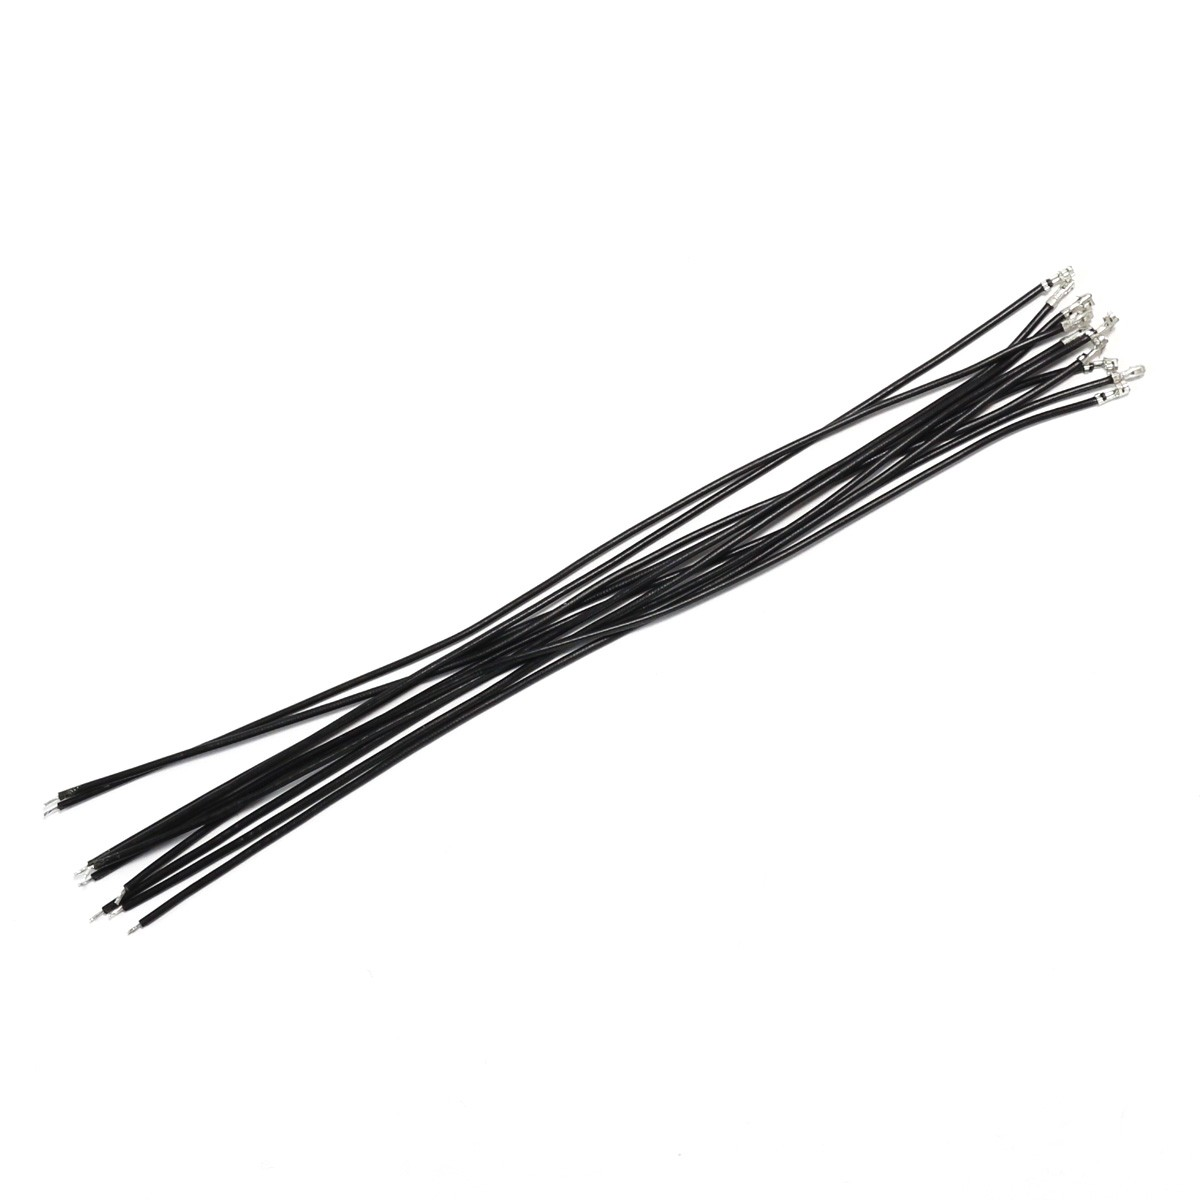 Interconnect Cable For Xh To Bare Wire 2 54mm 1 Pin 20cm Black X10